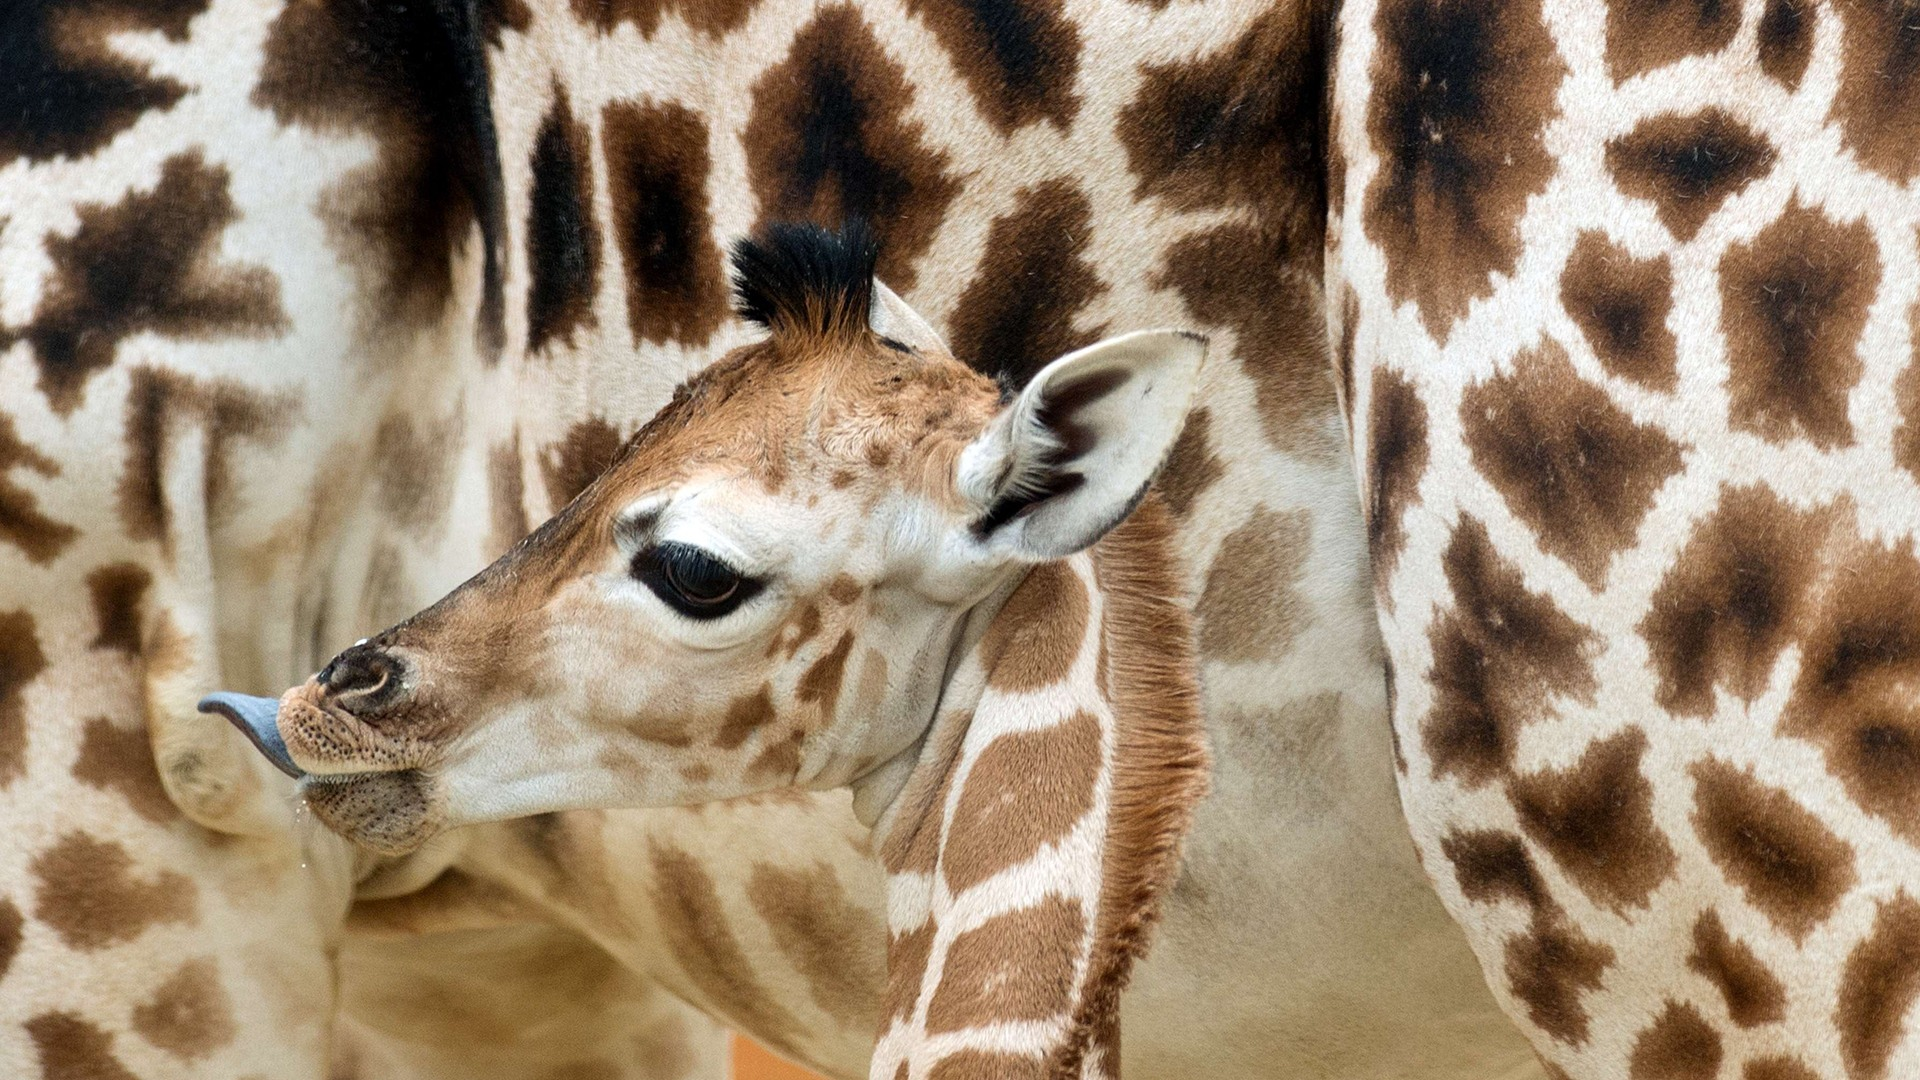 Image: GERMANY-ANIMAL-GIRAFFE